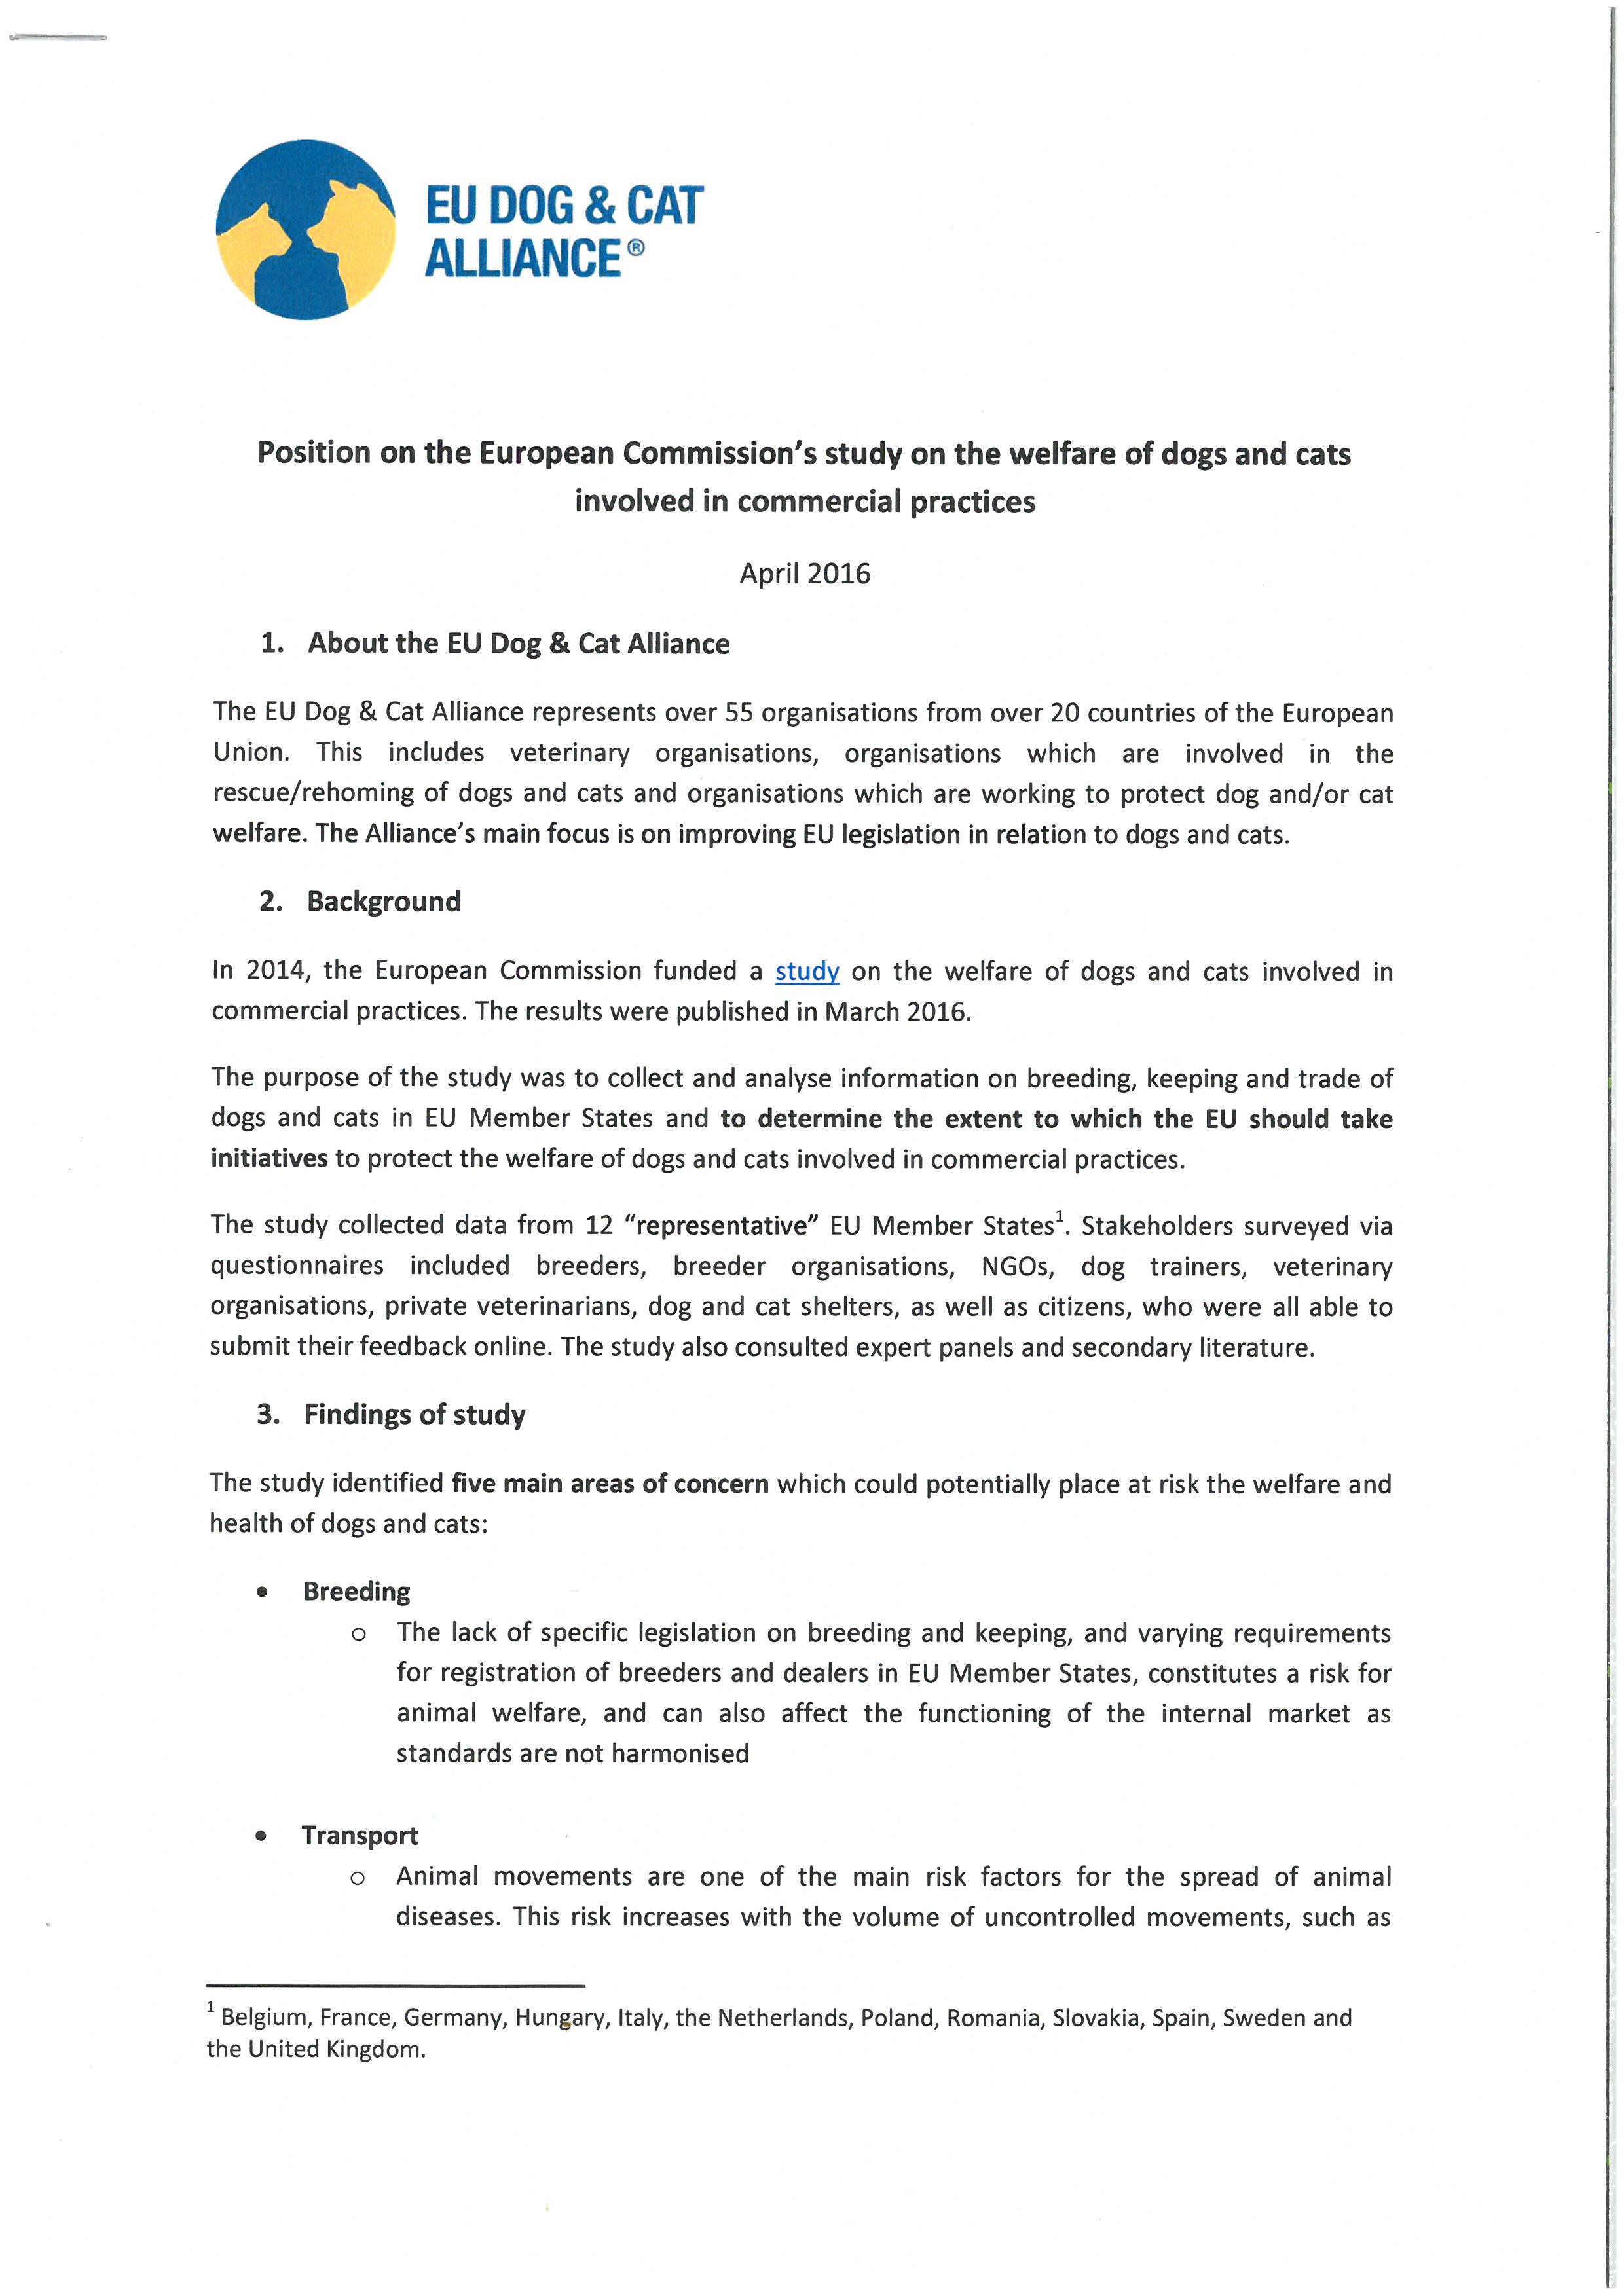 Position paper on the European Commission's study on the welfare of dogs and cats involved in commercial practices